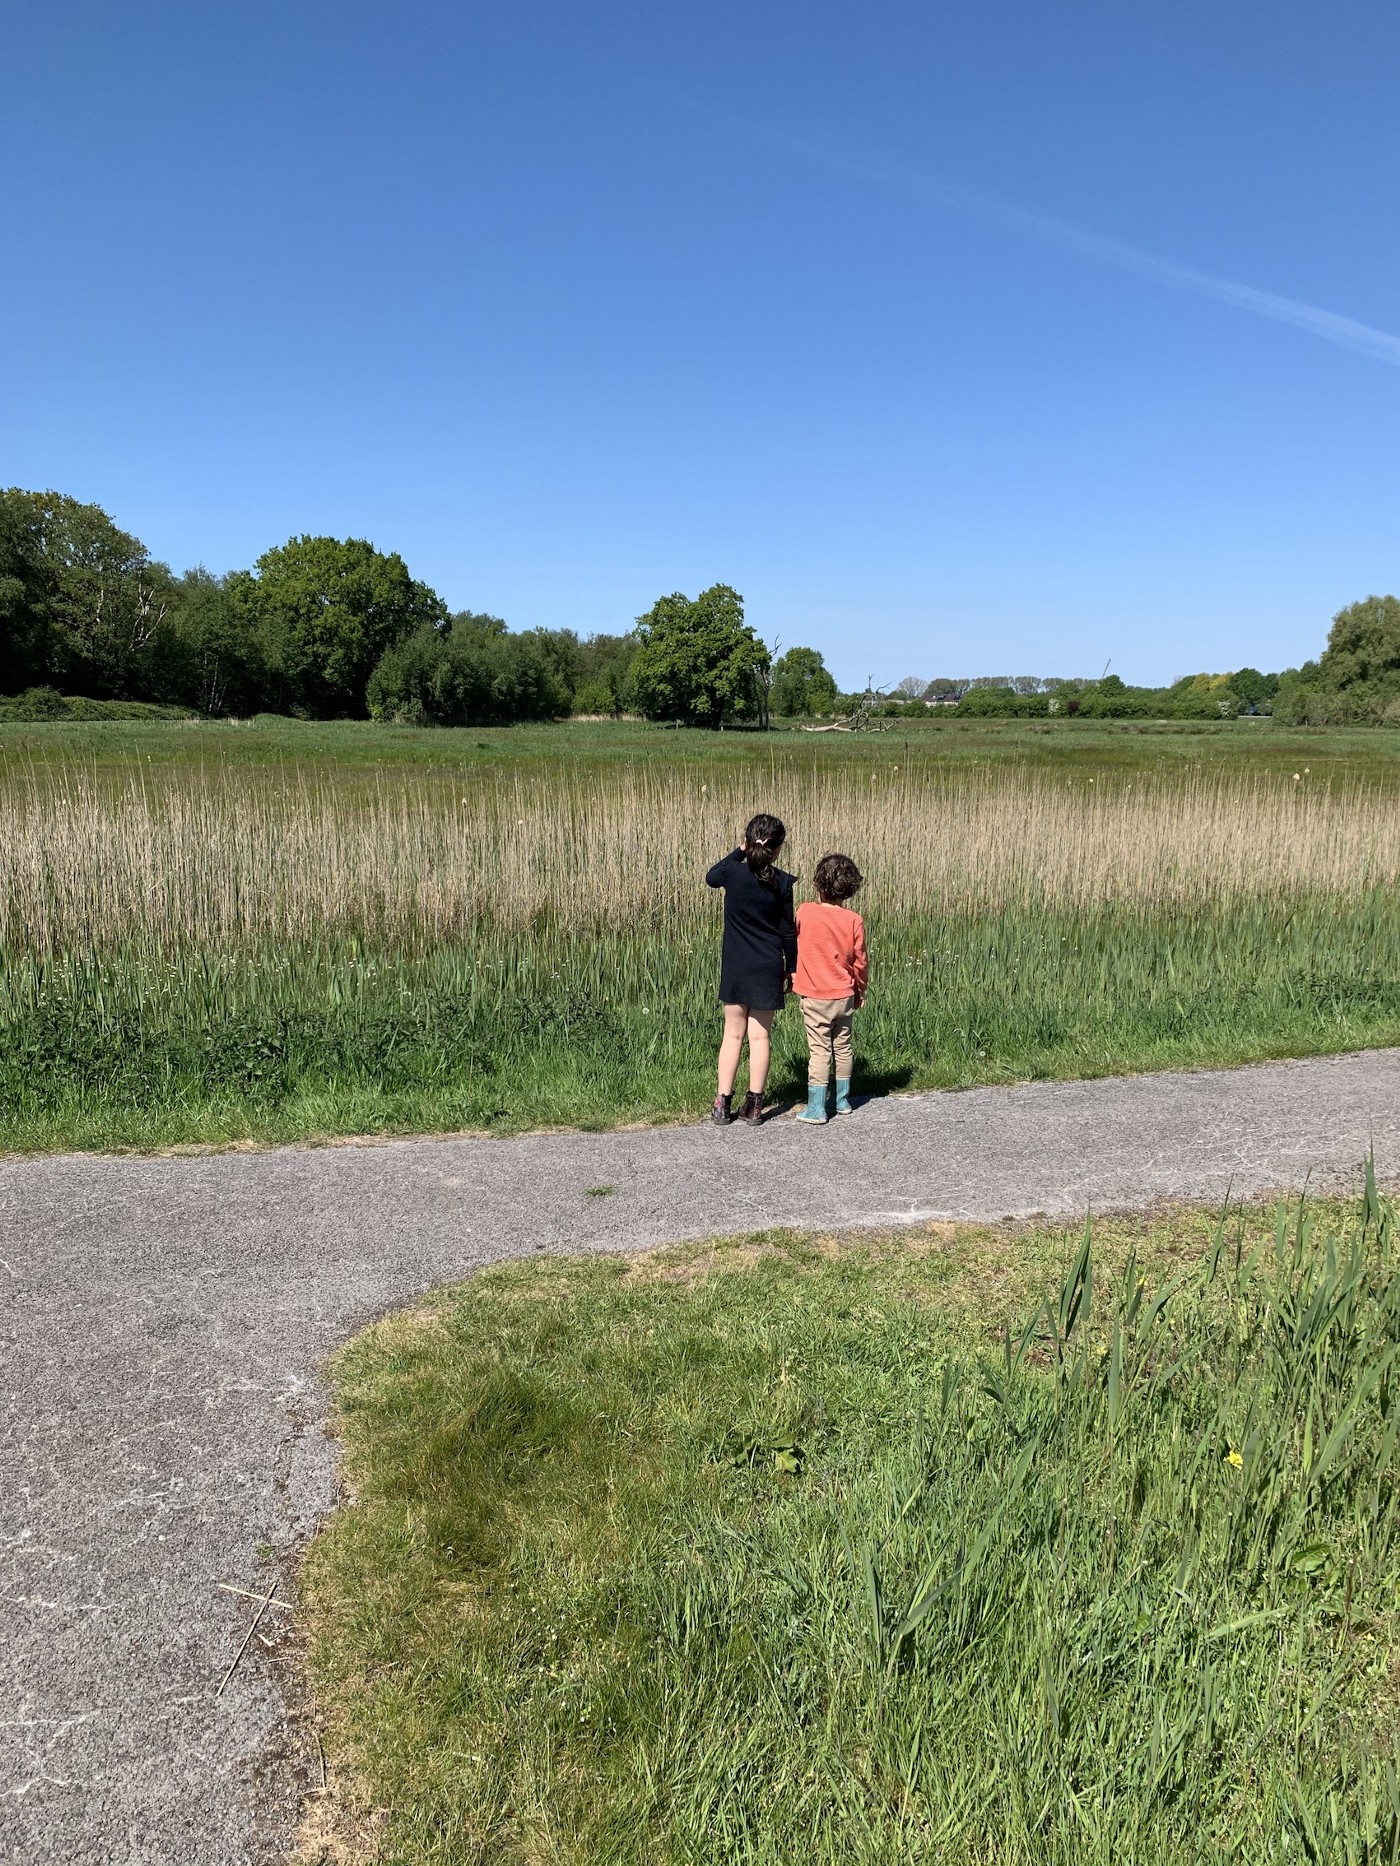 Two children looking out over a green field with some trees in the background.